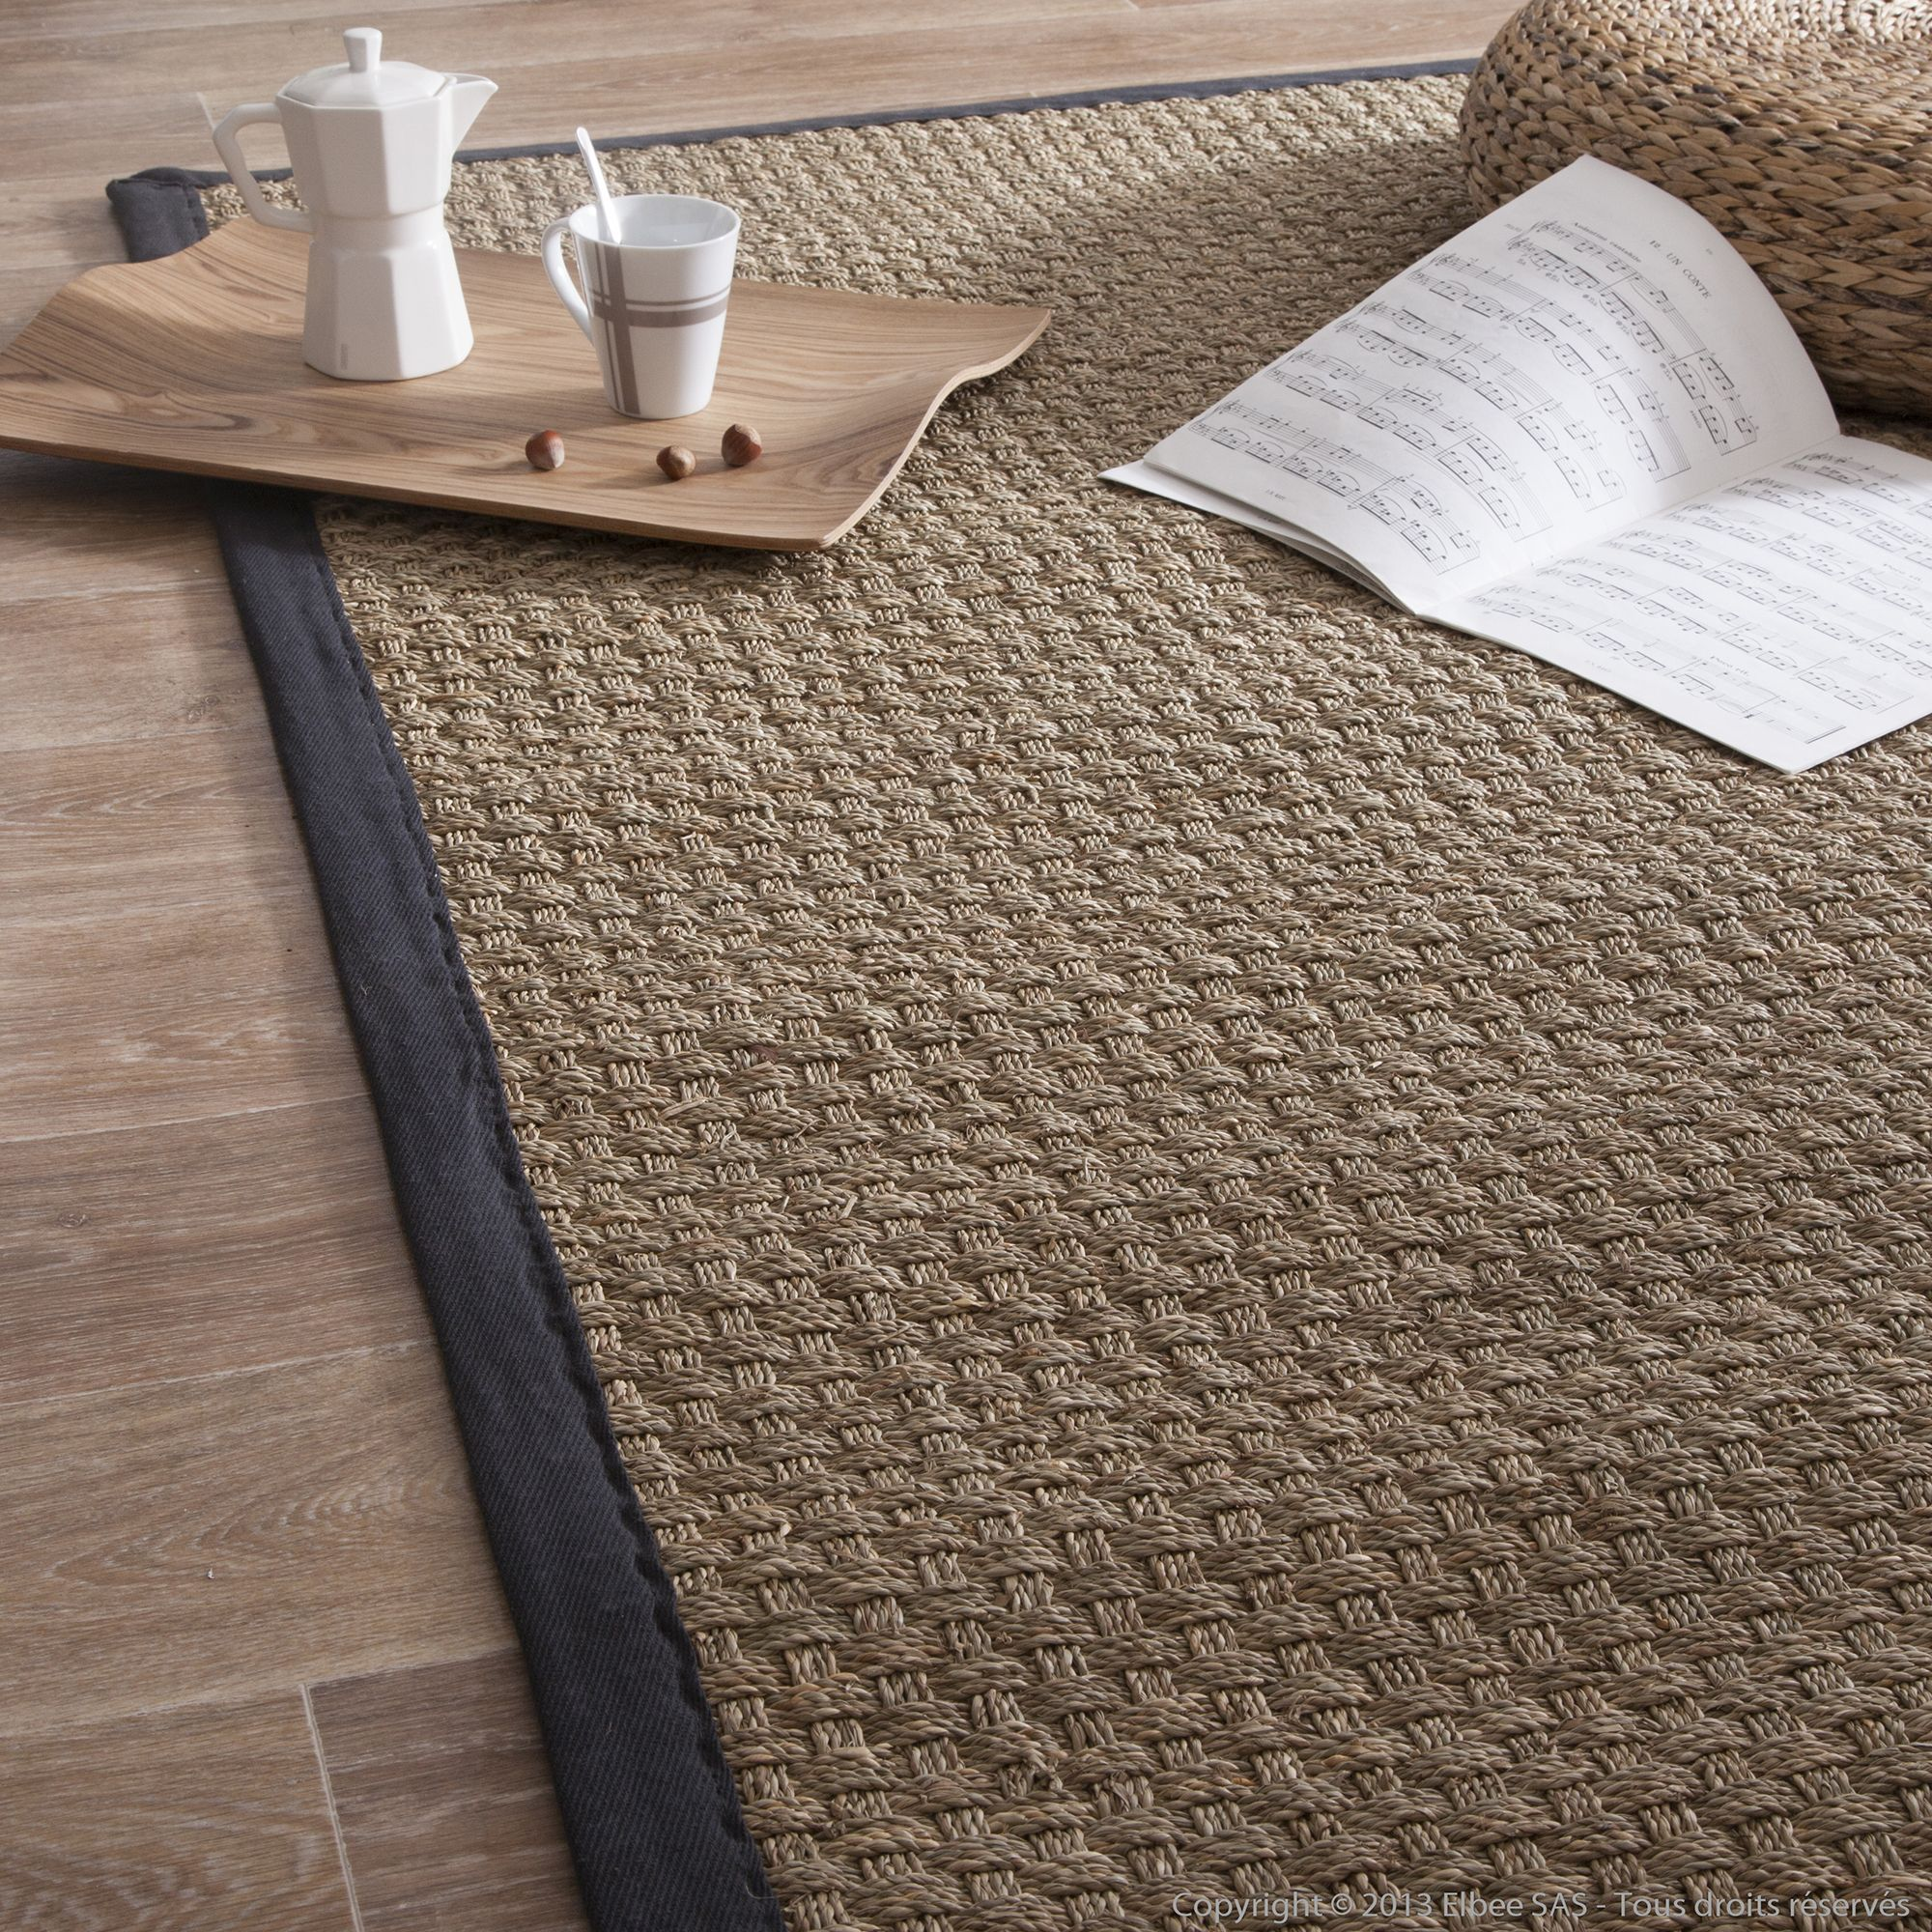 tapis jonc de mer tissage large avec ganse en coton essential chez nous pinterest salons. Black Bedroom Furniture Sets. Home Design Ideas